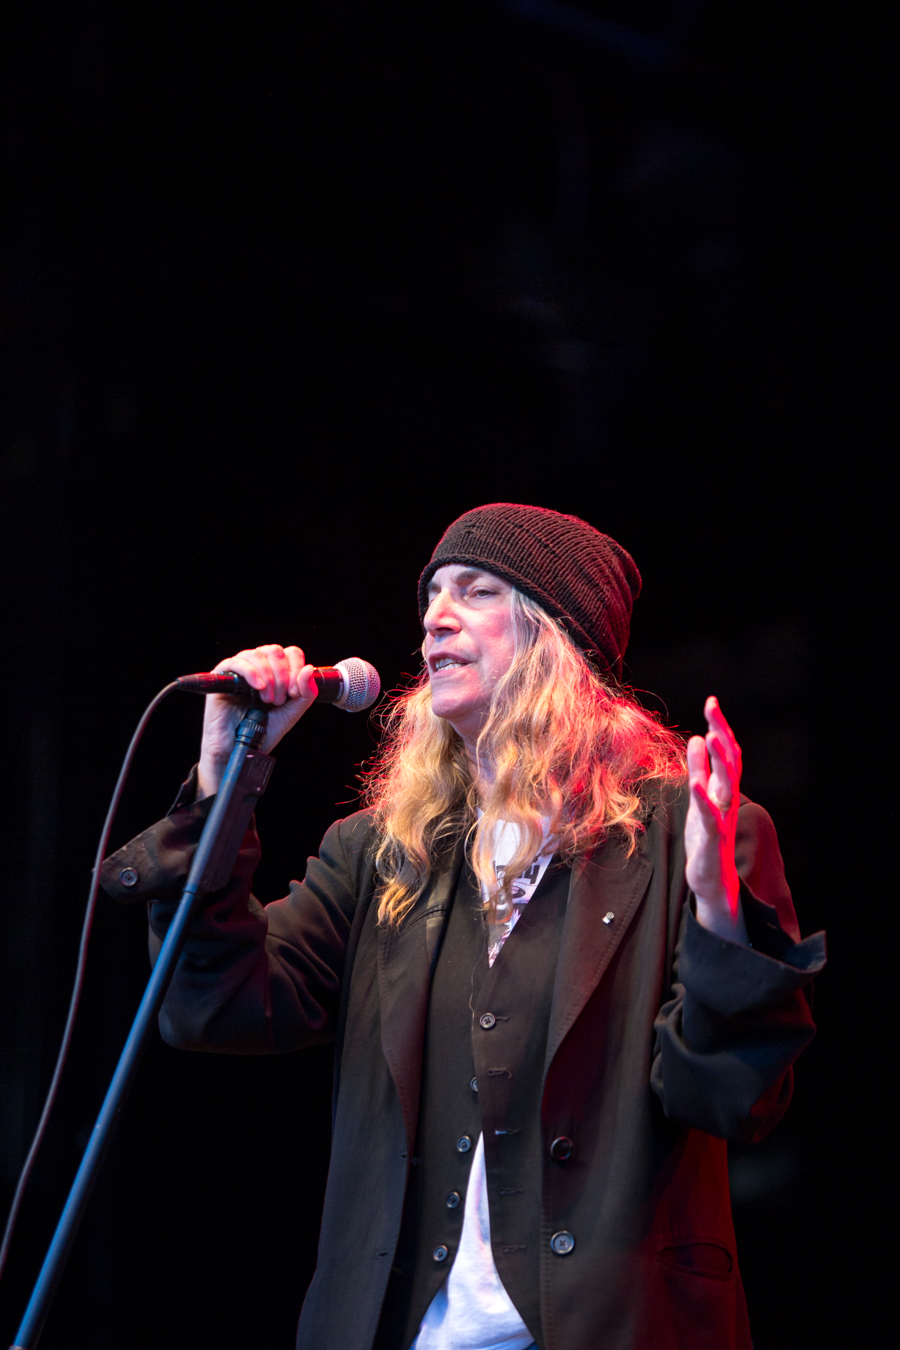 140730-Patti-Smith-Foto-Rebecca-Carlgren-livefoto-nu-photo--9